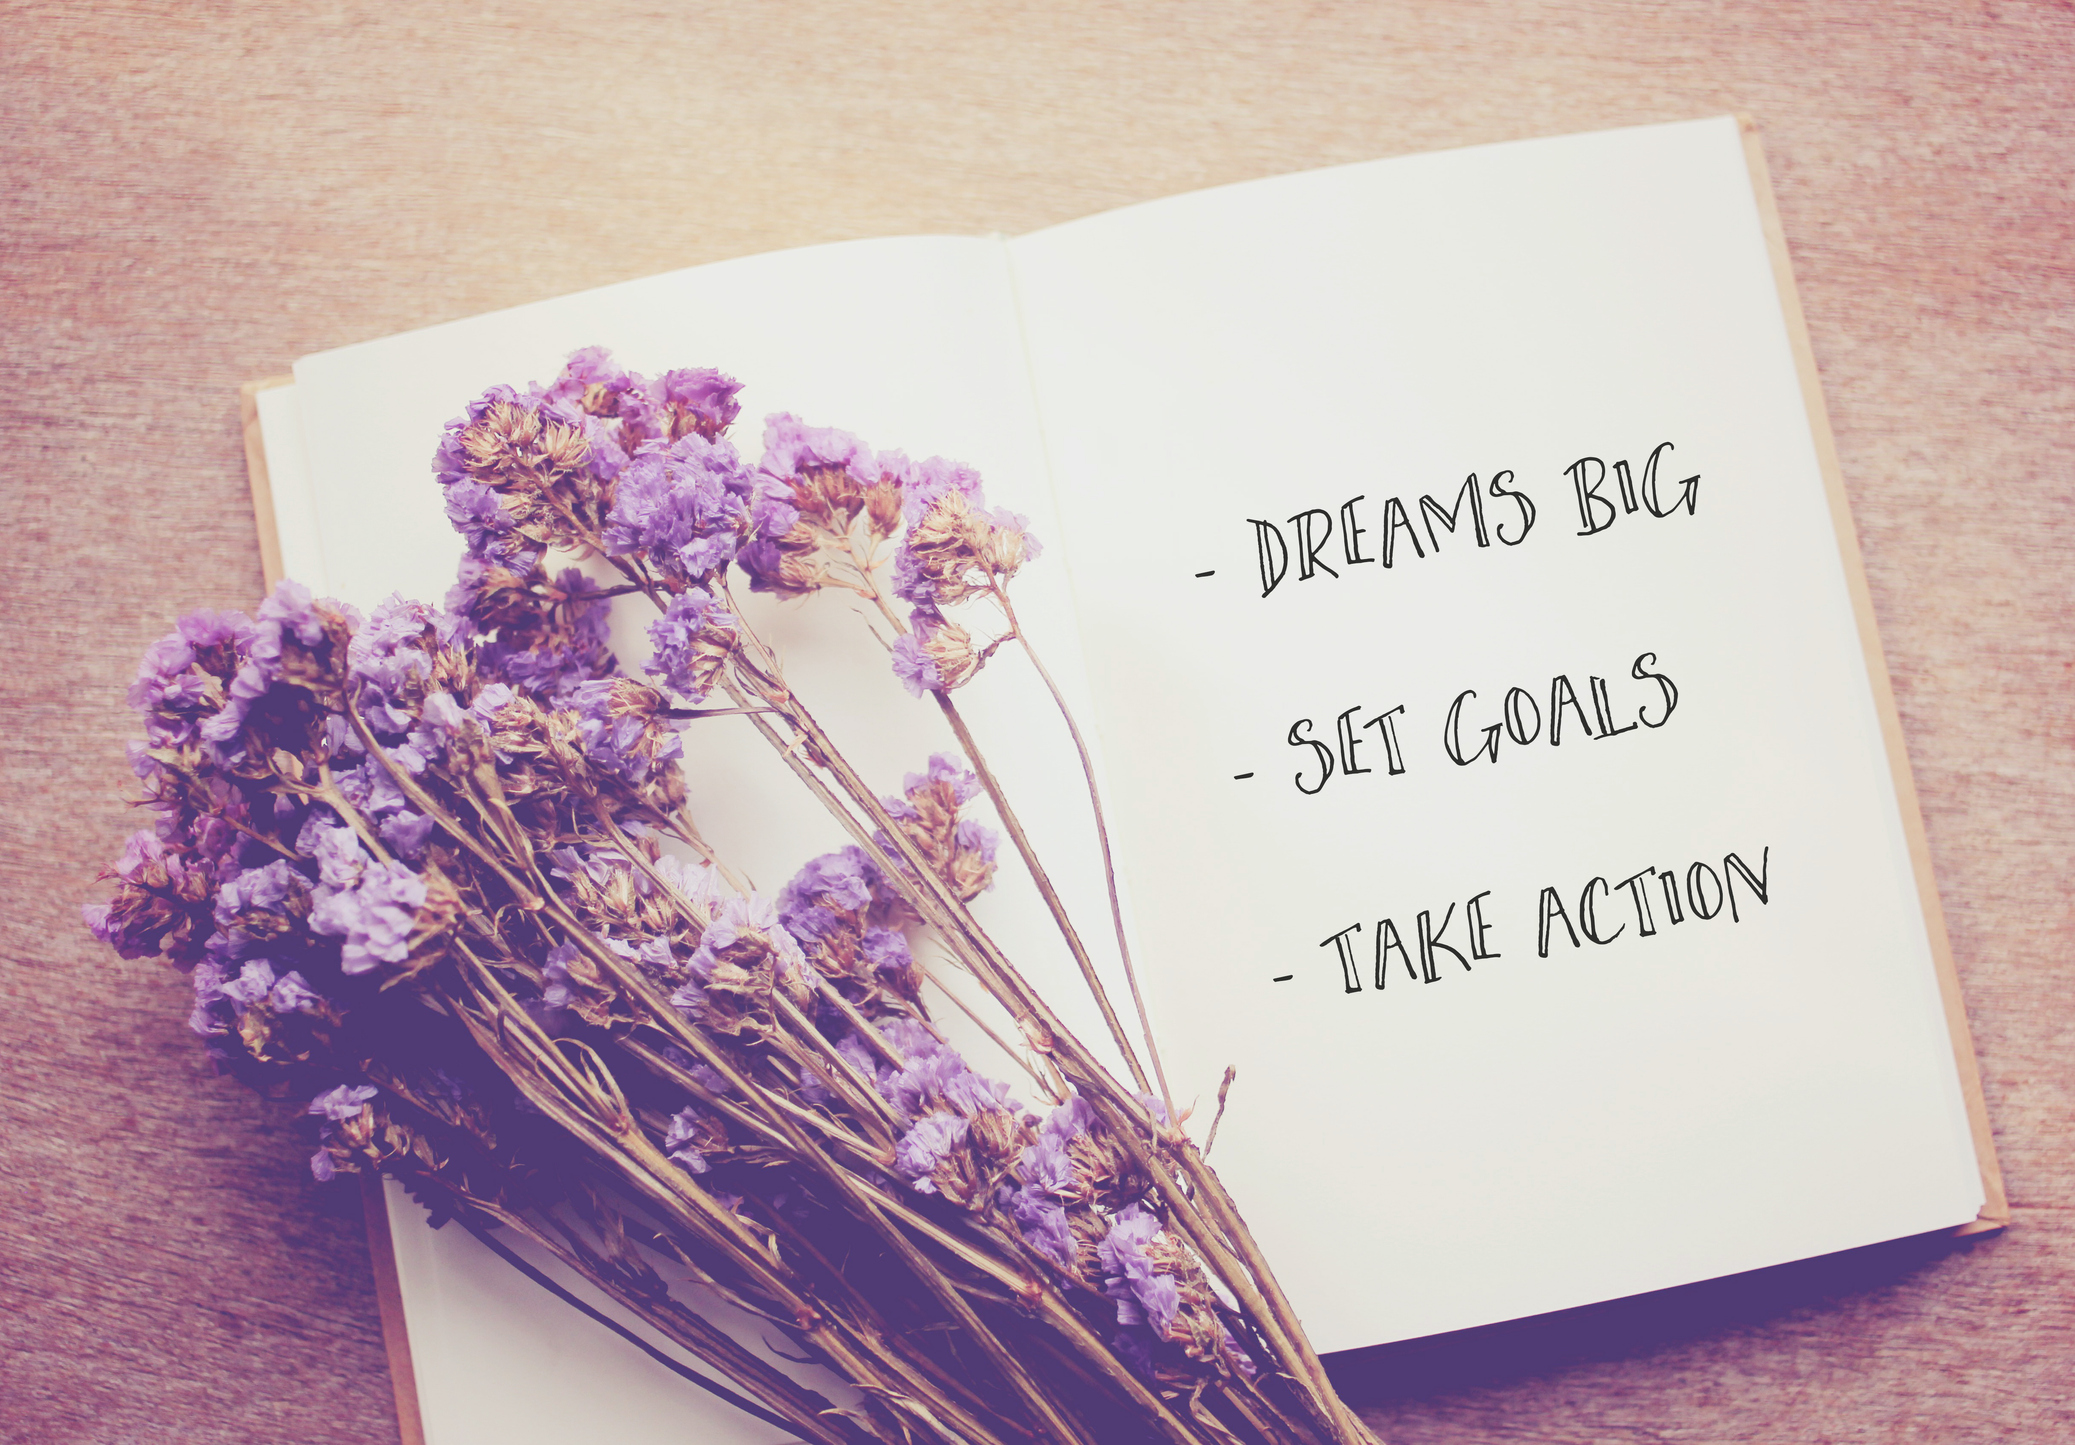 Inspirational quote on notebook and dried statice flowers with retro filter effect